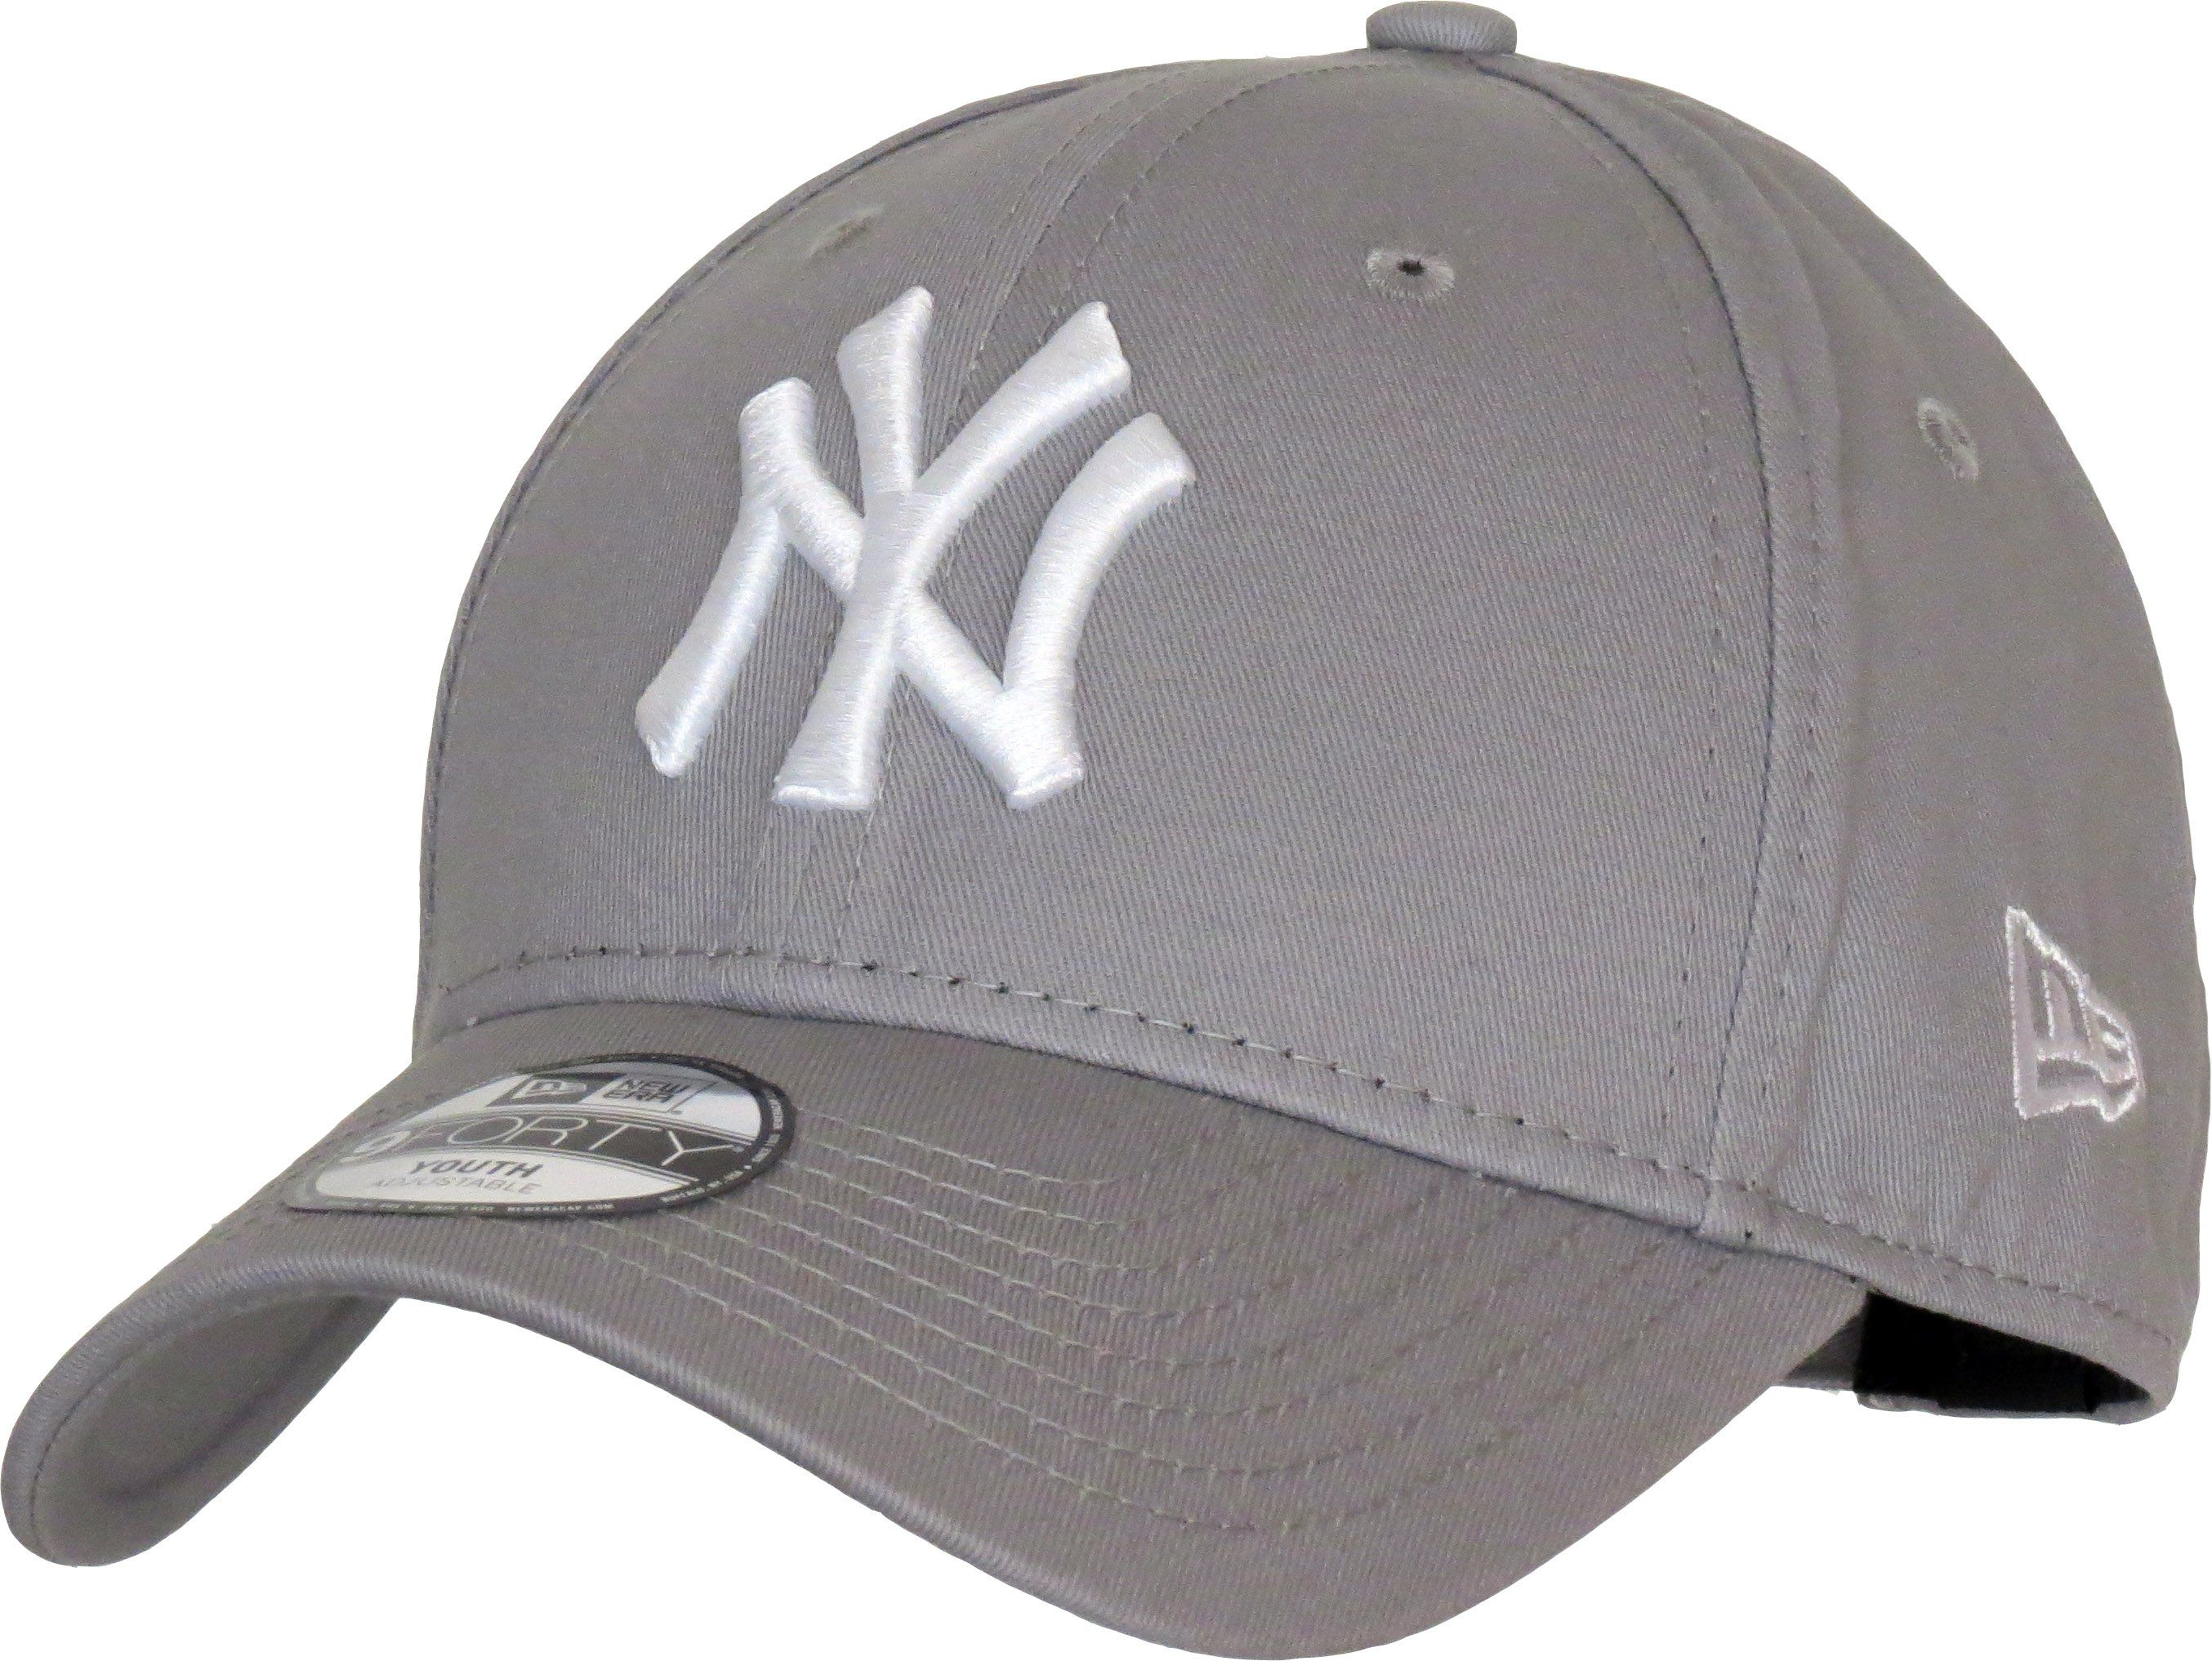 359b4e016dc19 NY Yankees New Era 940 Kids Grey Baseball Cap (Age 4 - 10 Years ...